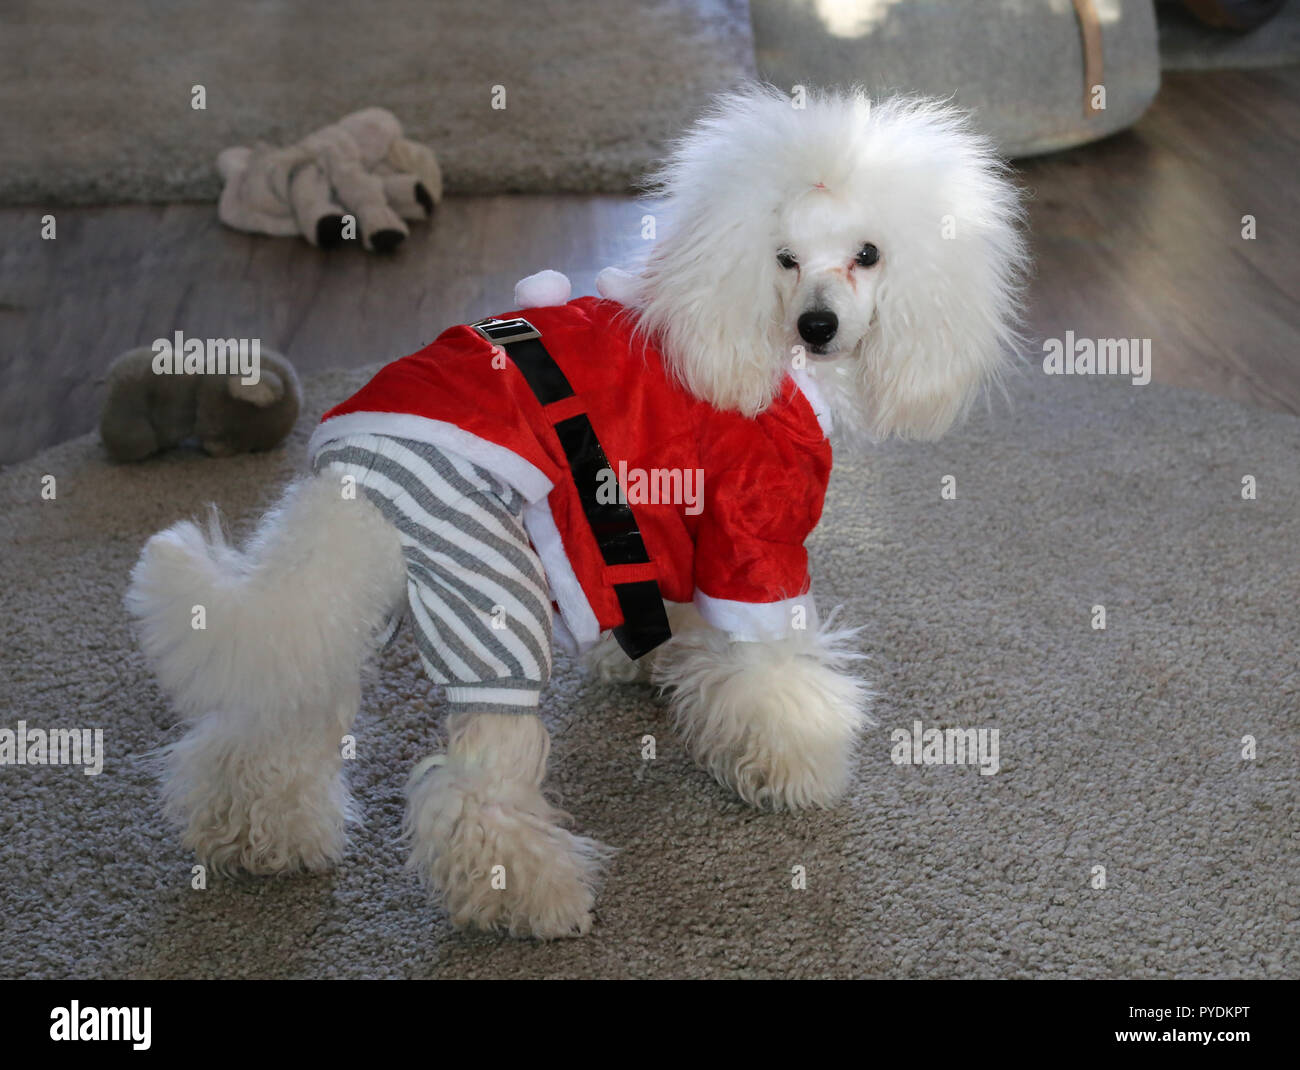 My white poodle dog wearing Christmas outfit. Furry, cute and funny looking dog photographed with neutral colored background where is carpets and toys - Stock Image